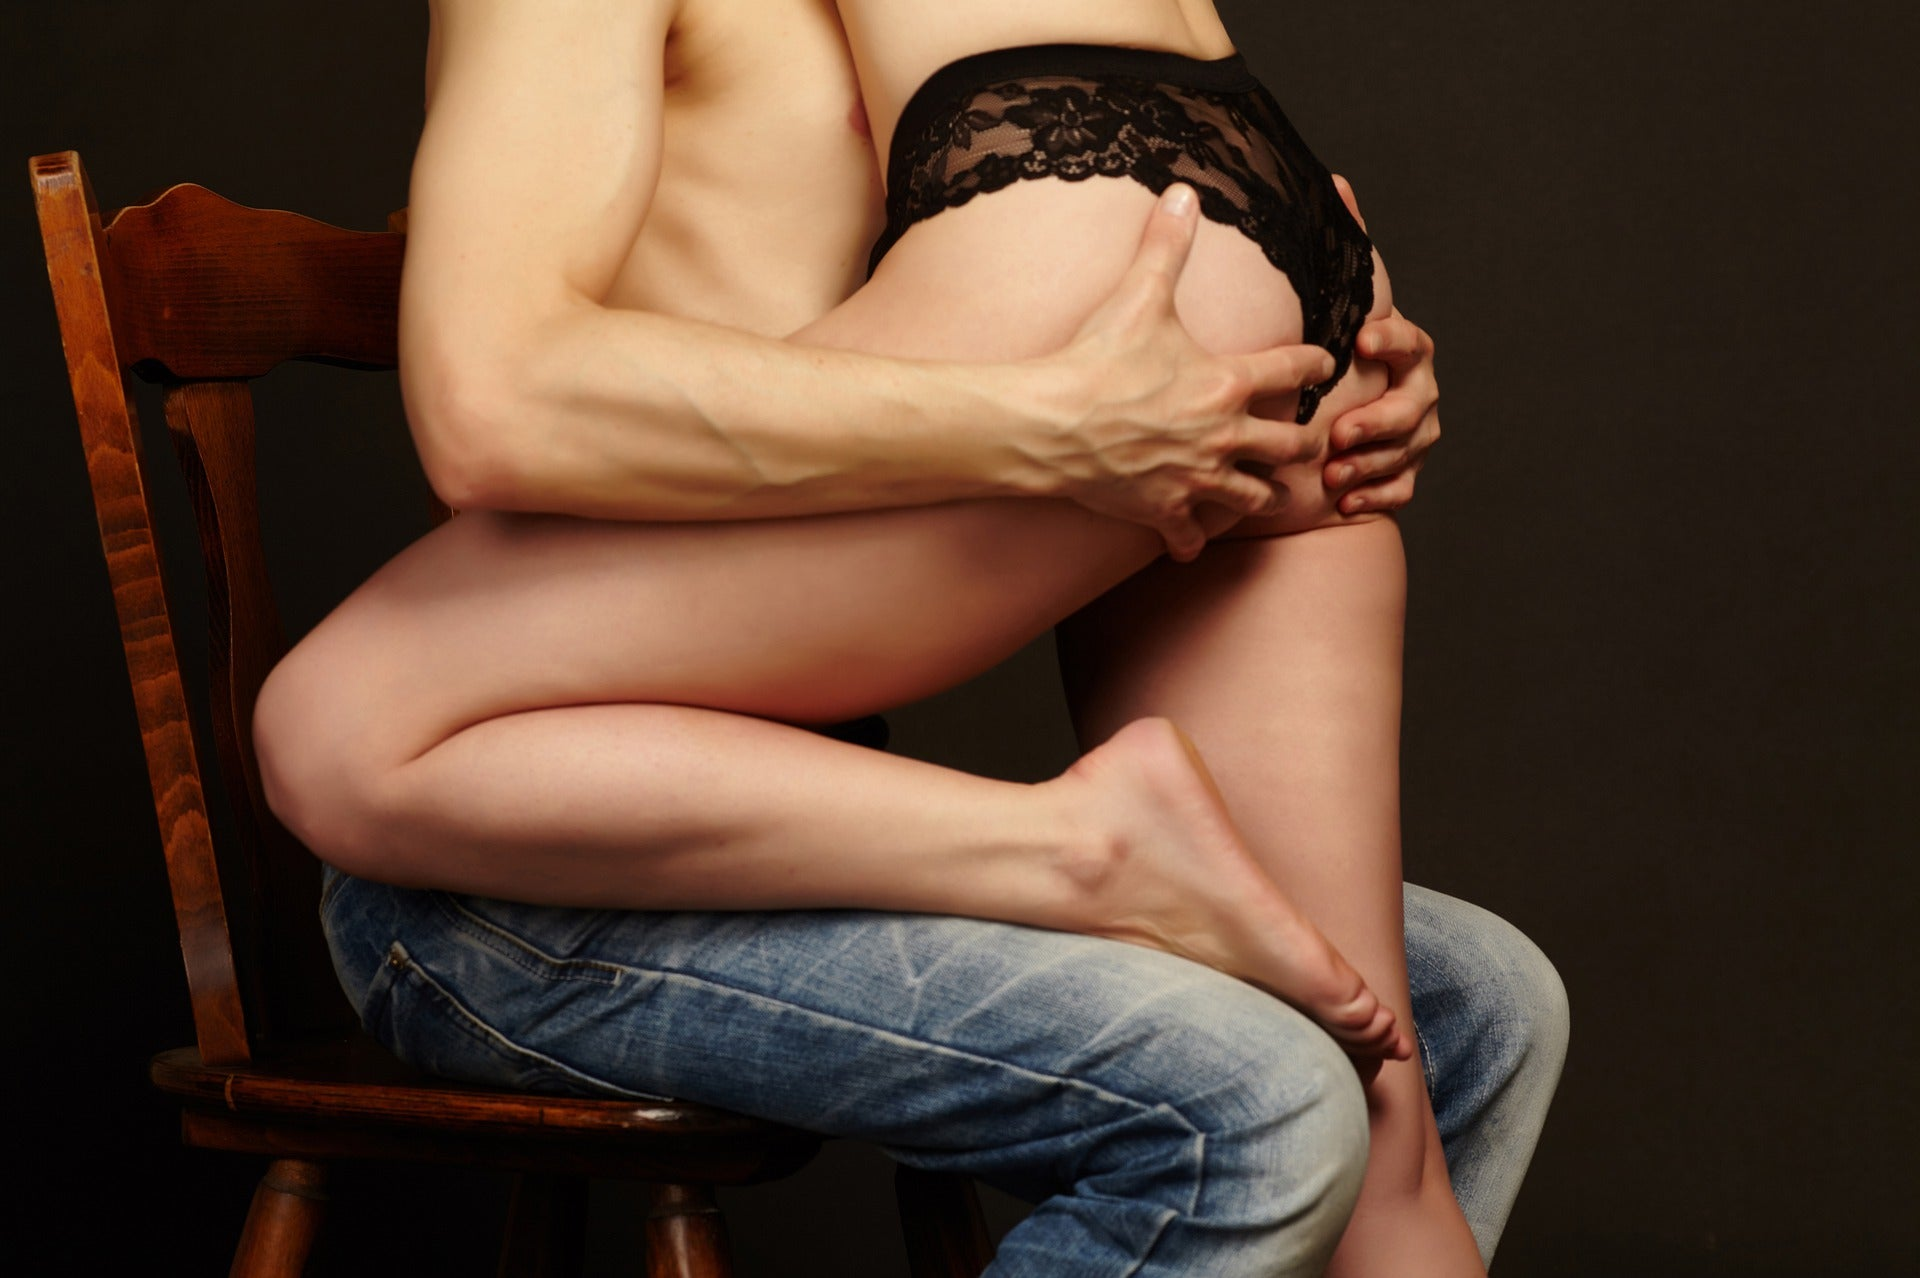 Couple engaging in intimacy